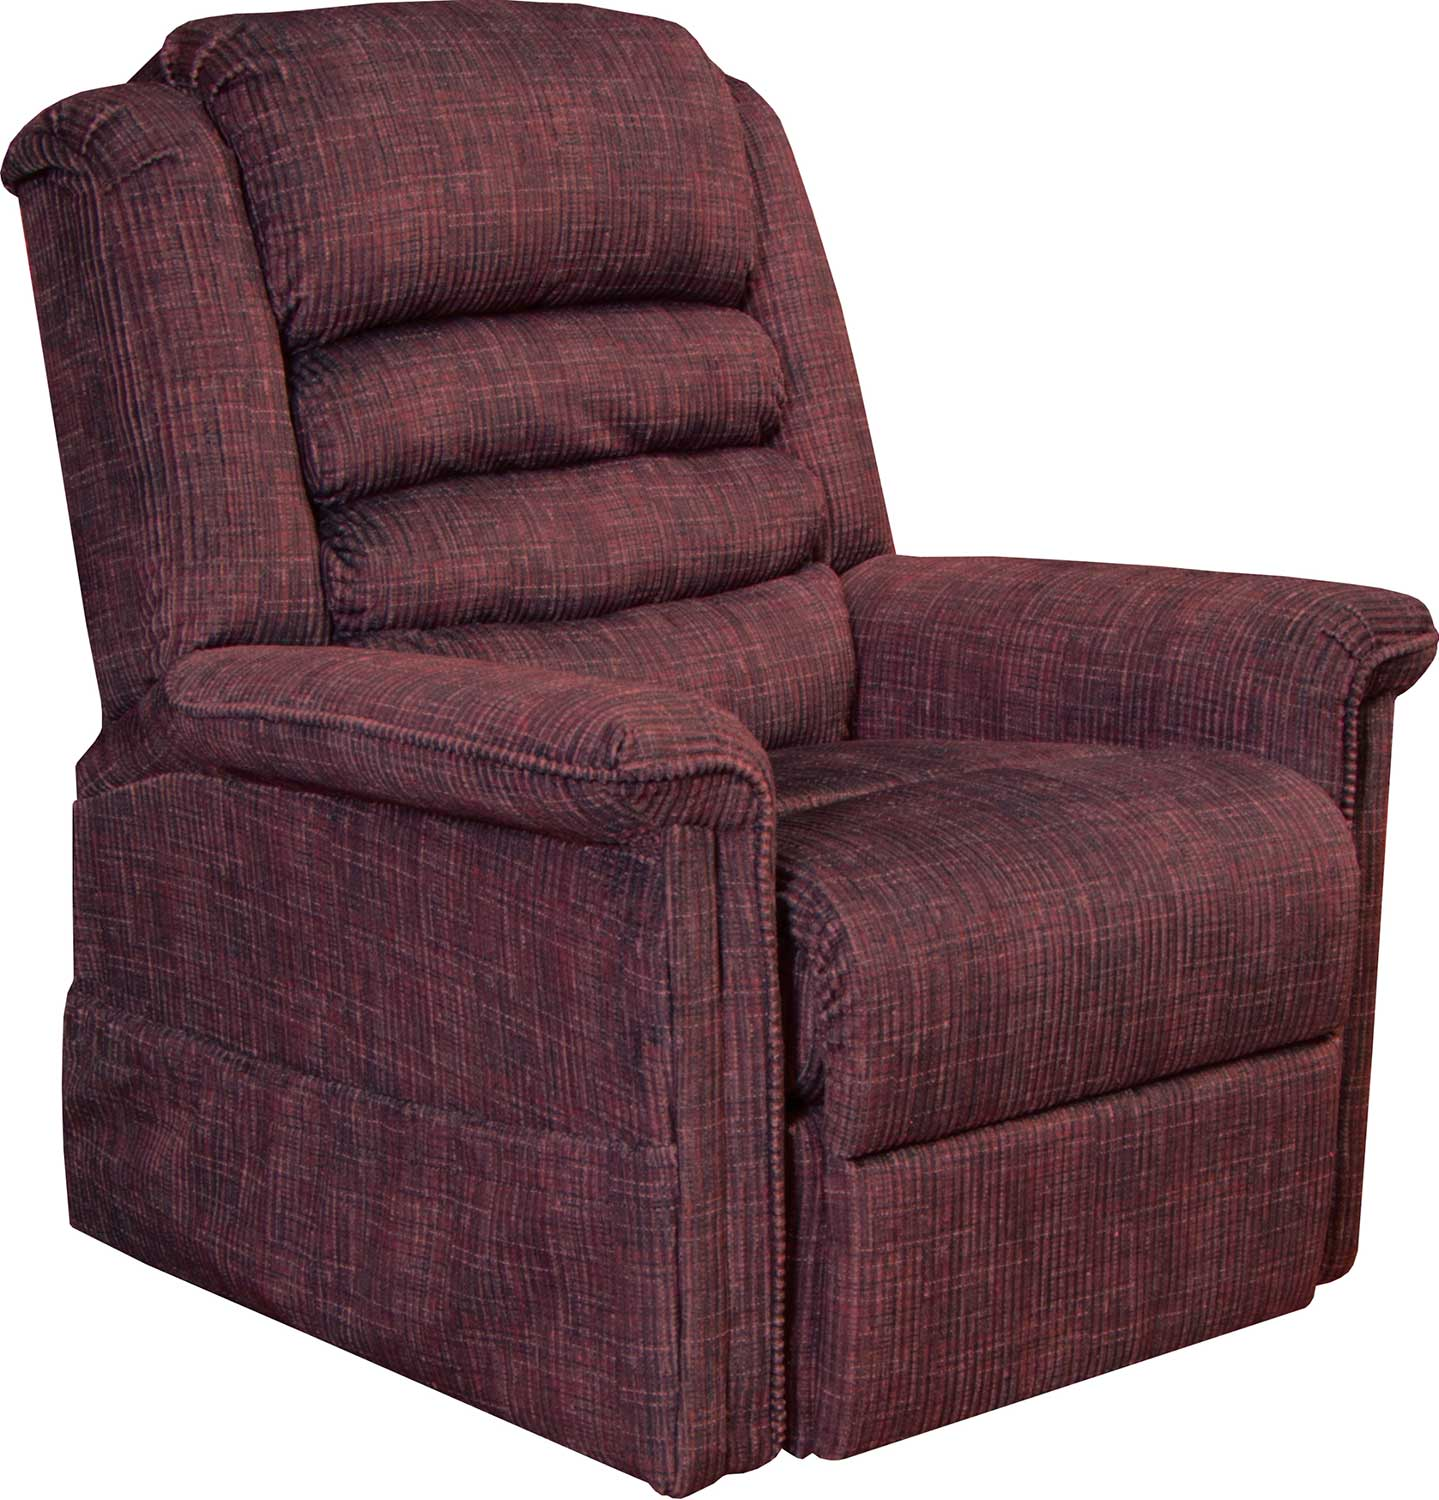 CatNapper Soother Power Lift Recliner Chair - Wine